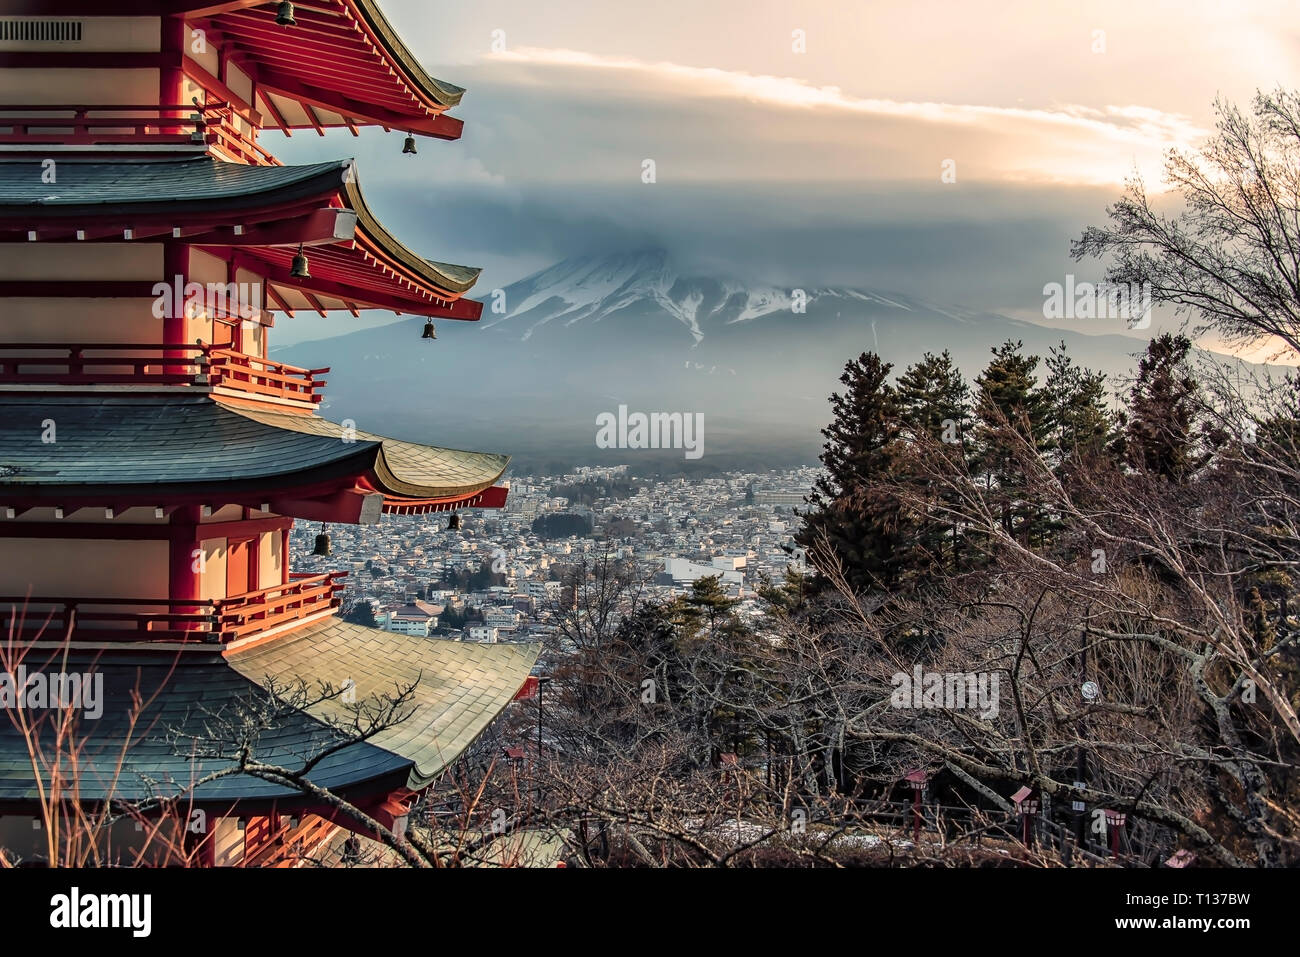 Famous Place of Japan with Chureito pagoda and Mount Fuji in daytime Stock Photo